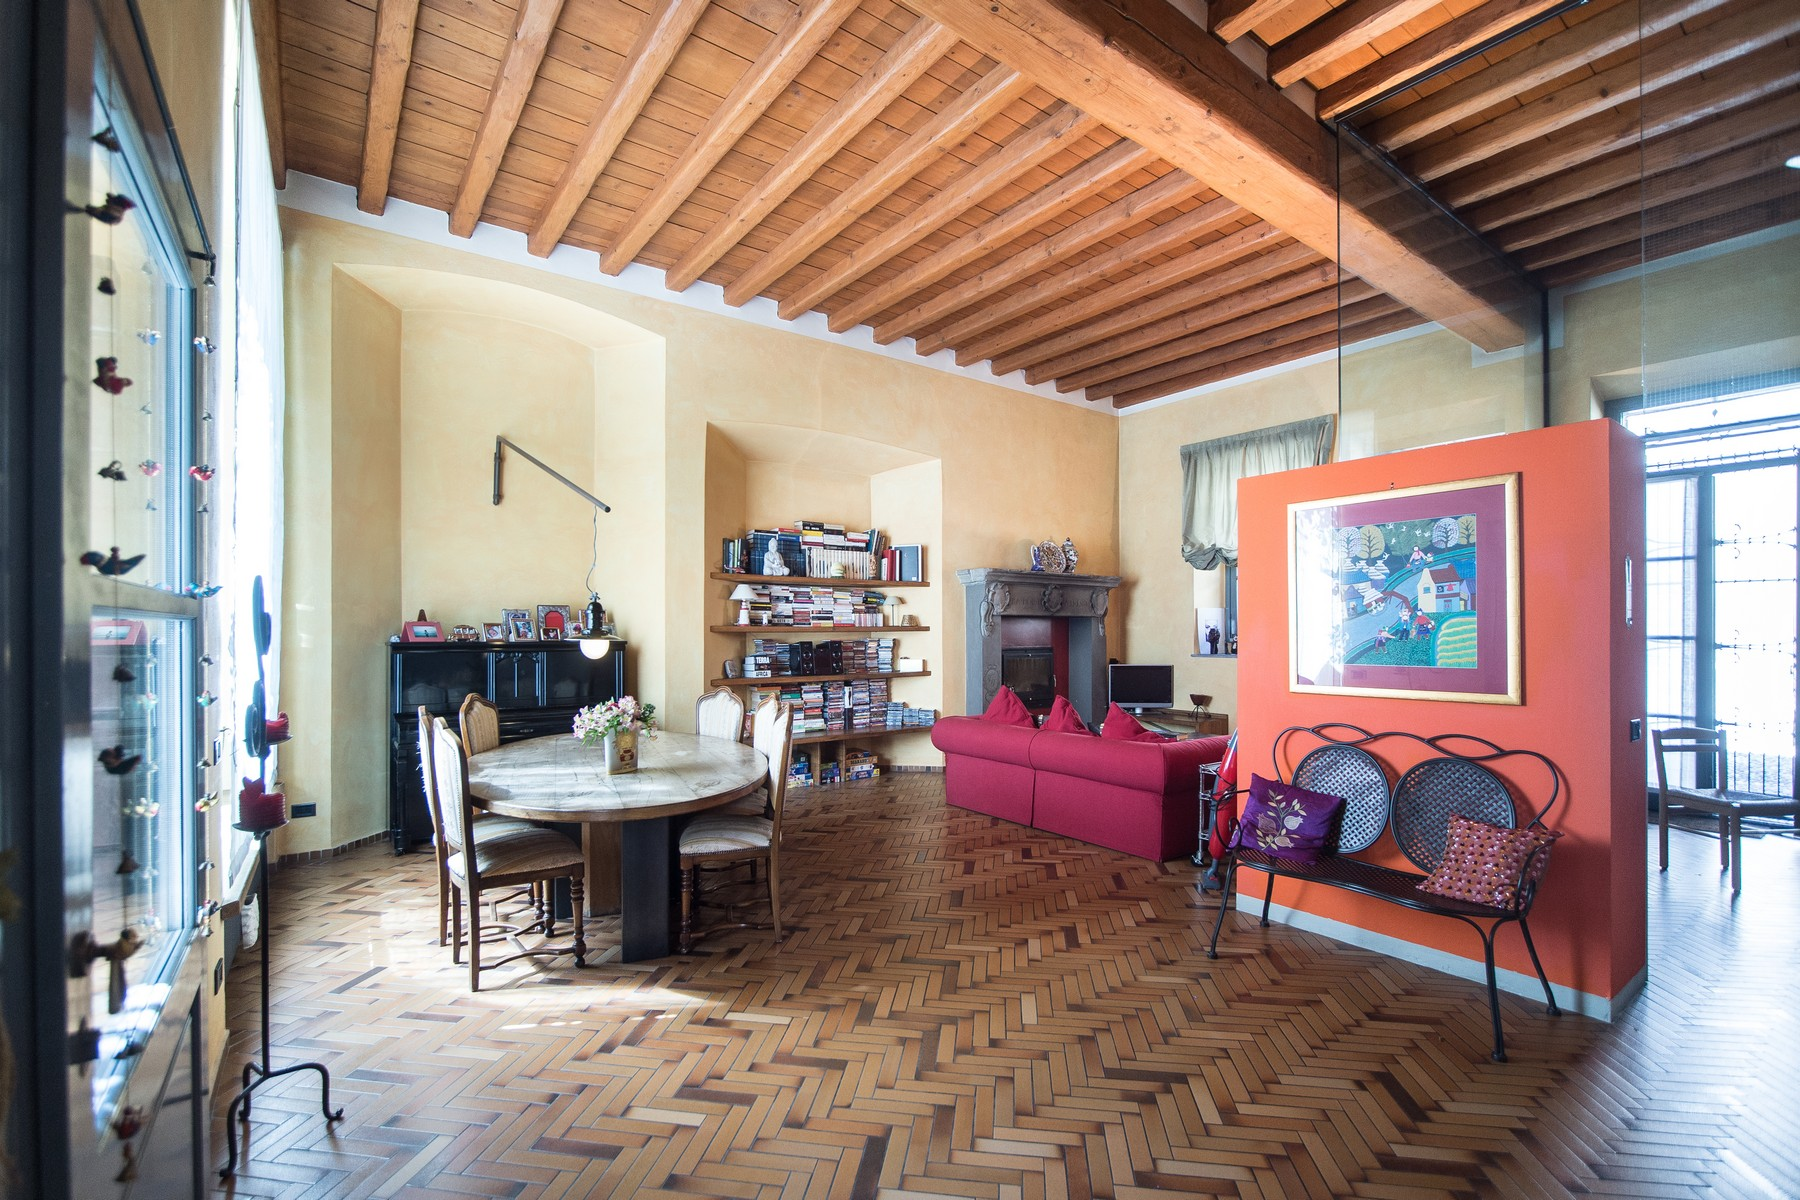 شقة للـ Sale في Magnificent semi-detached house on two levels Fino Mornasco, Como, Italy